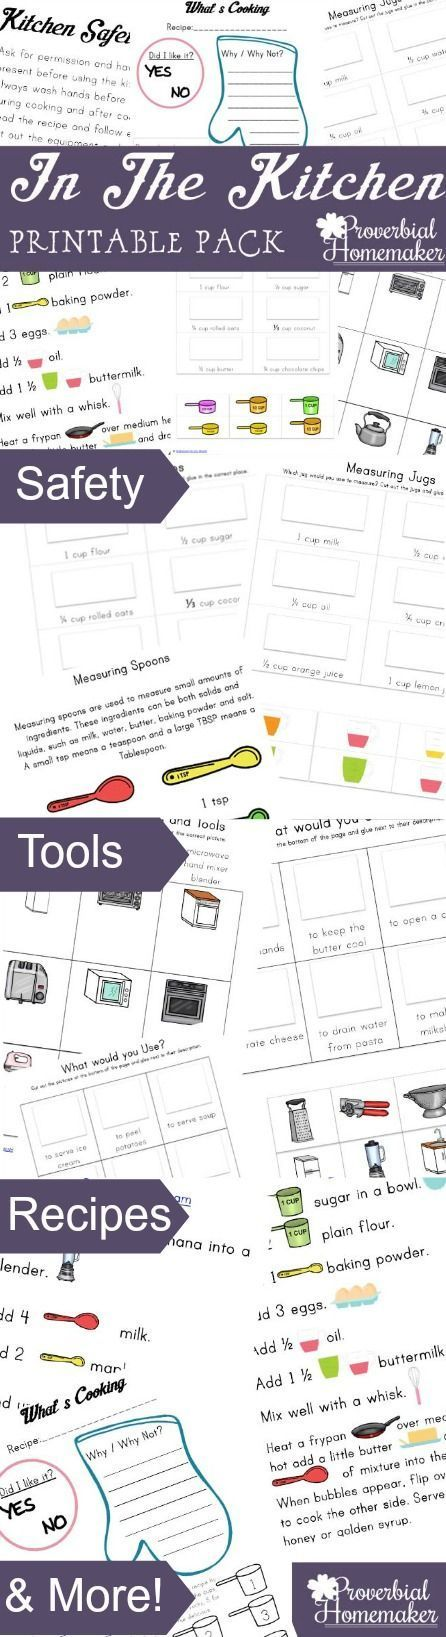 Kids In The Kitchen Printable Pack Cooking classes for